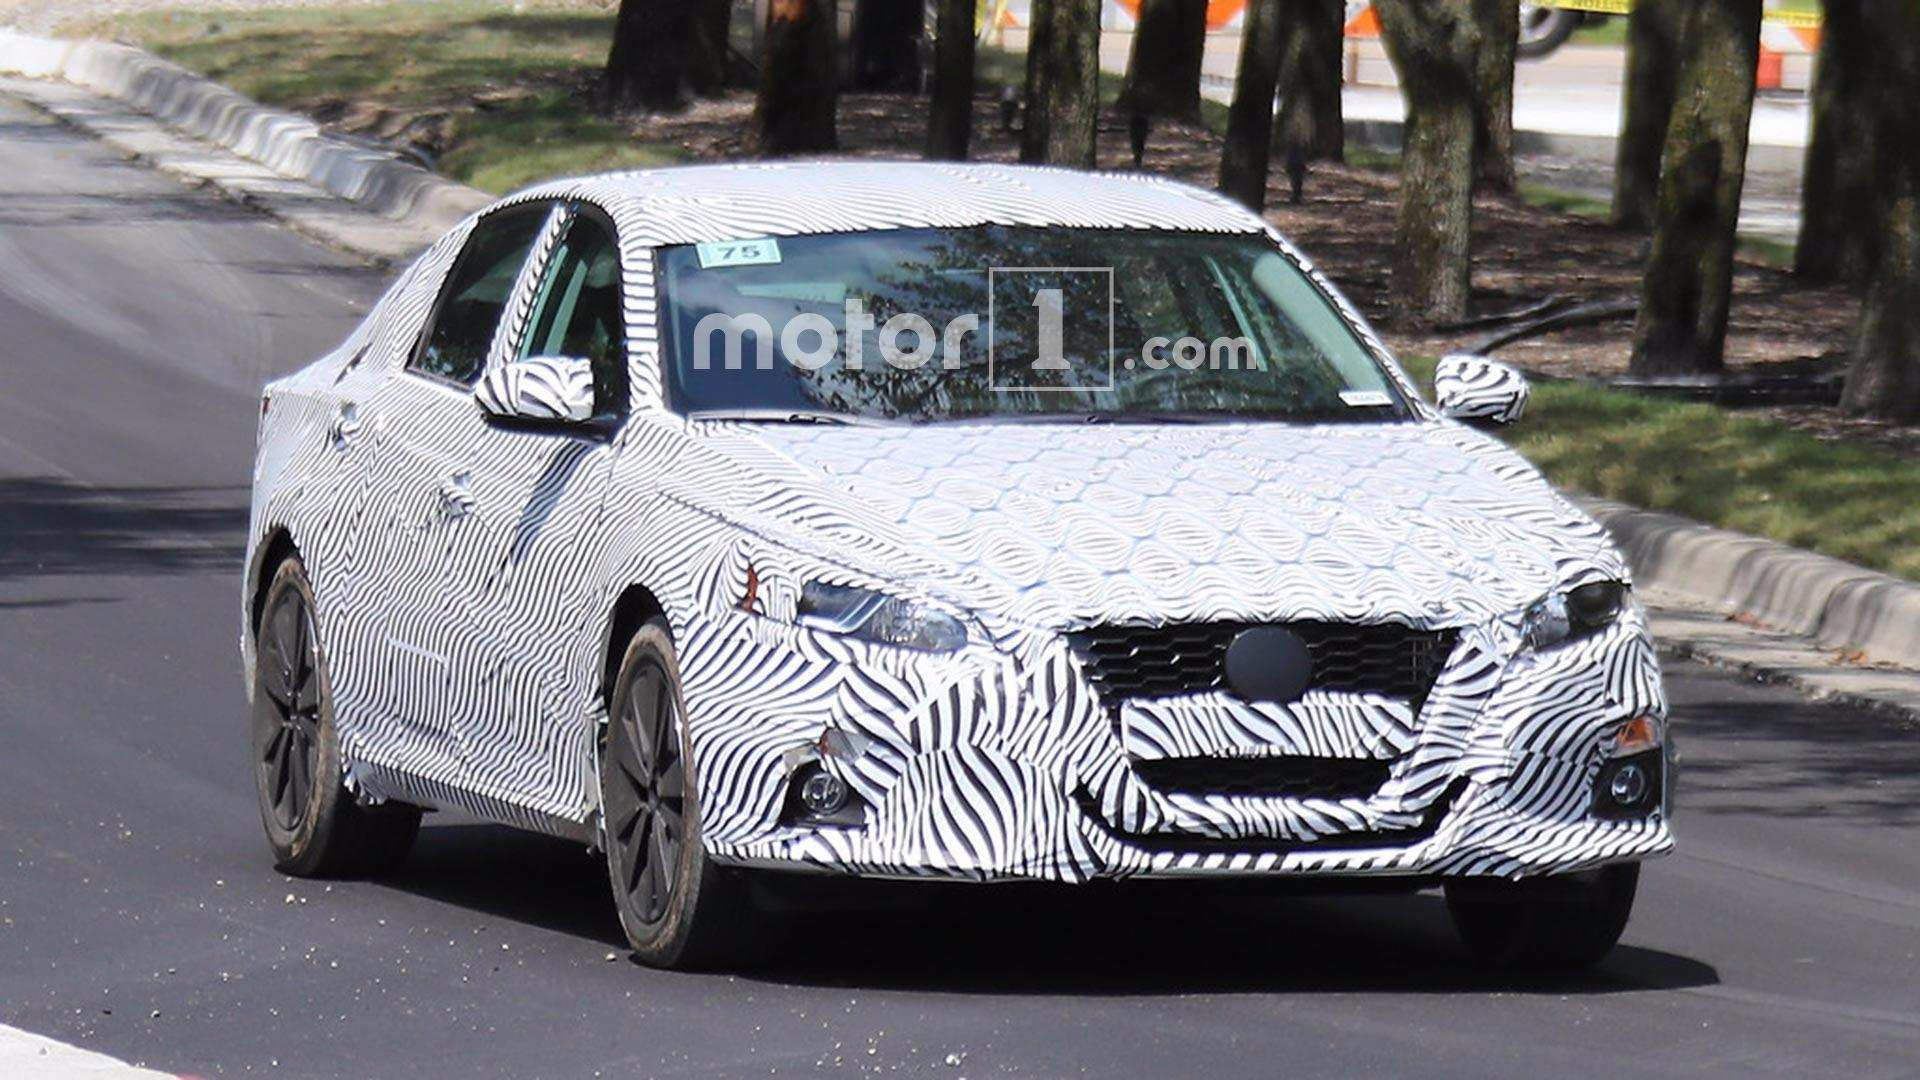 38 Concept of 2019 Nissan Altima Spy Shots Performance and New Engine by 2019 Nissan Altima Spy Shots